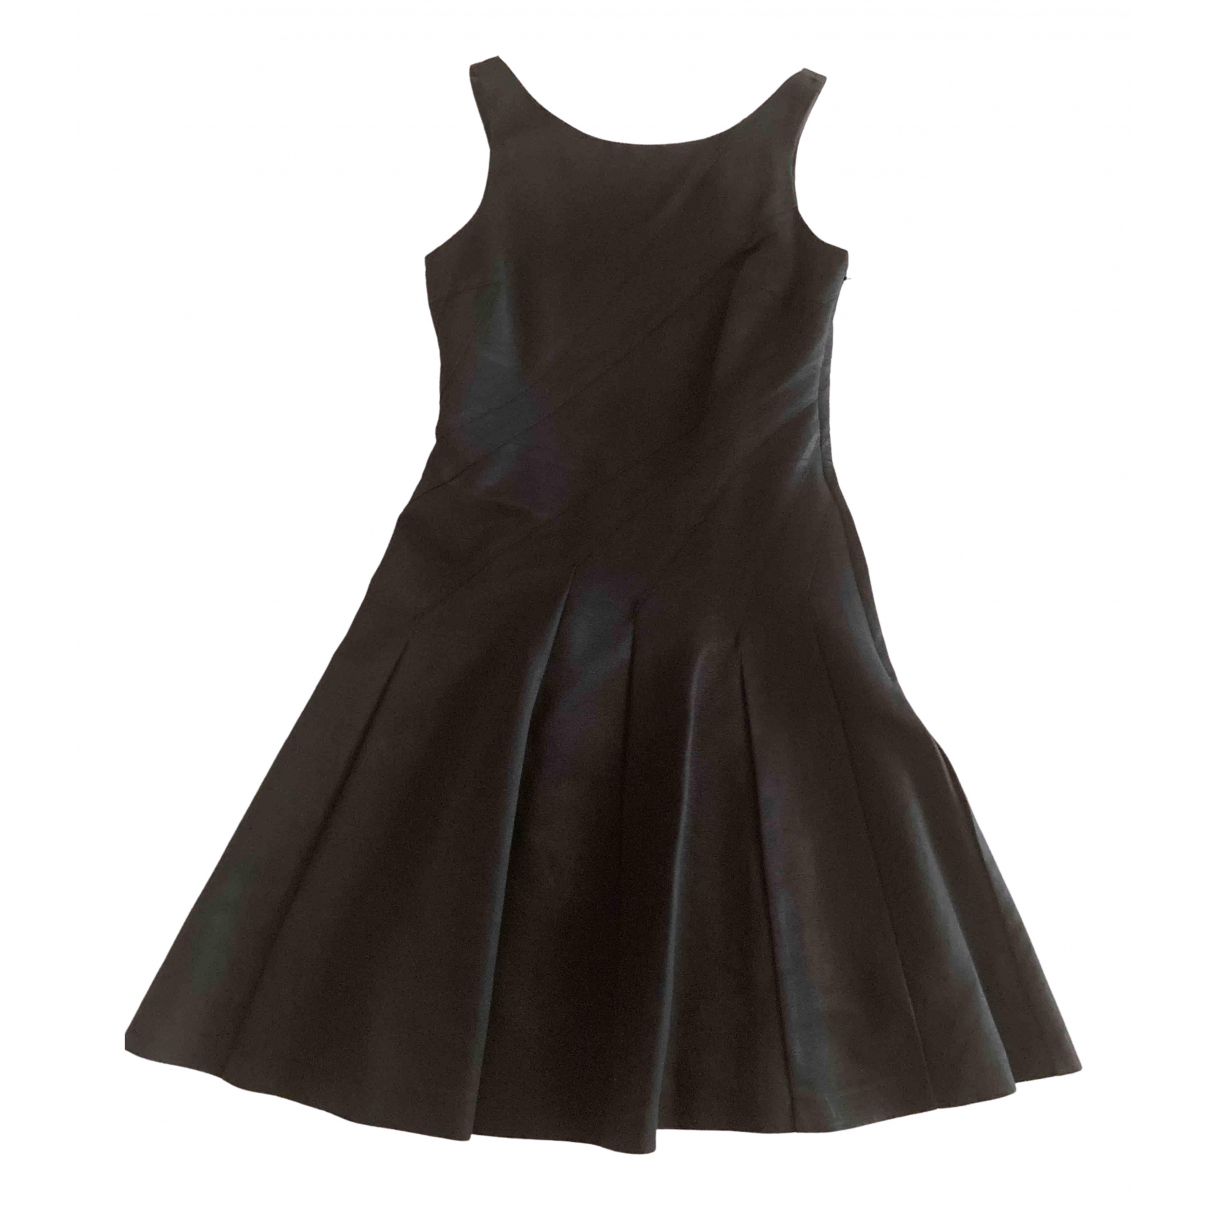 Reiss \N Black dress for Women 6 UK